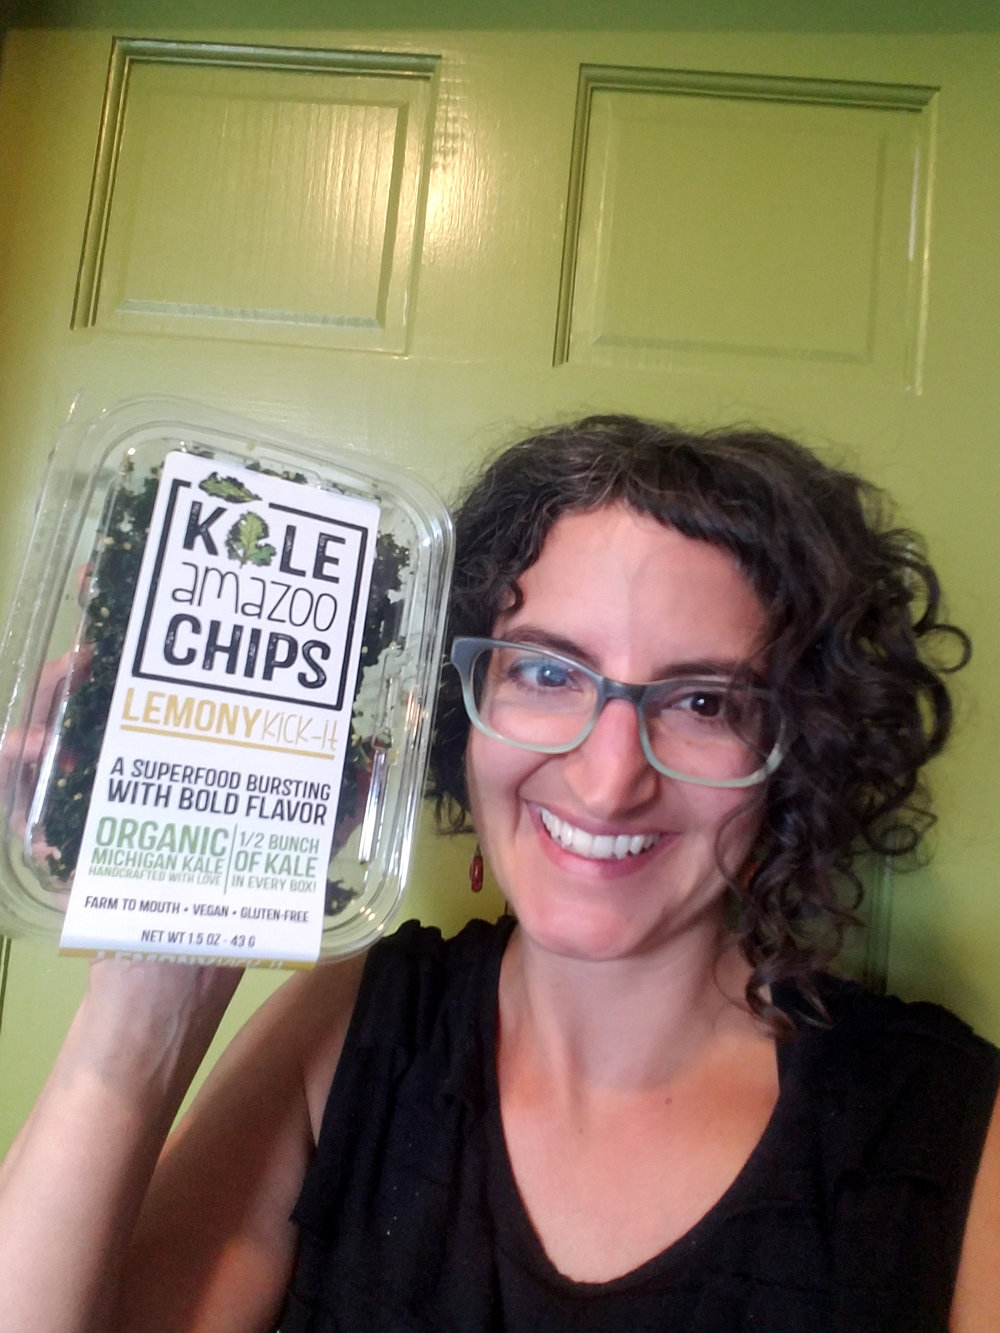 """We are so grateful for the Can-Do Kitchen and the opportunity to make kale chips there. You have provided tremendous support."" - Hether Frayer of Kaleamazoo Chips"